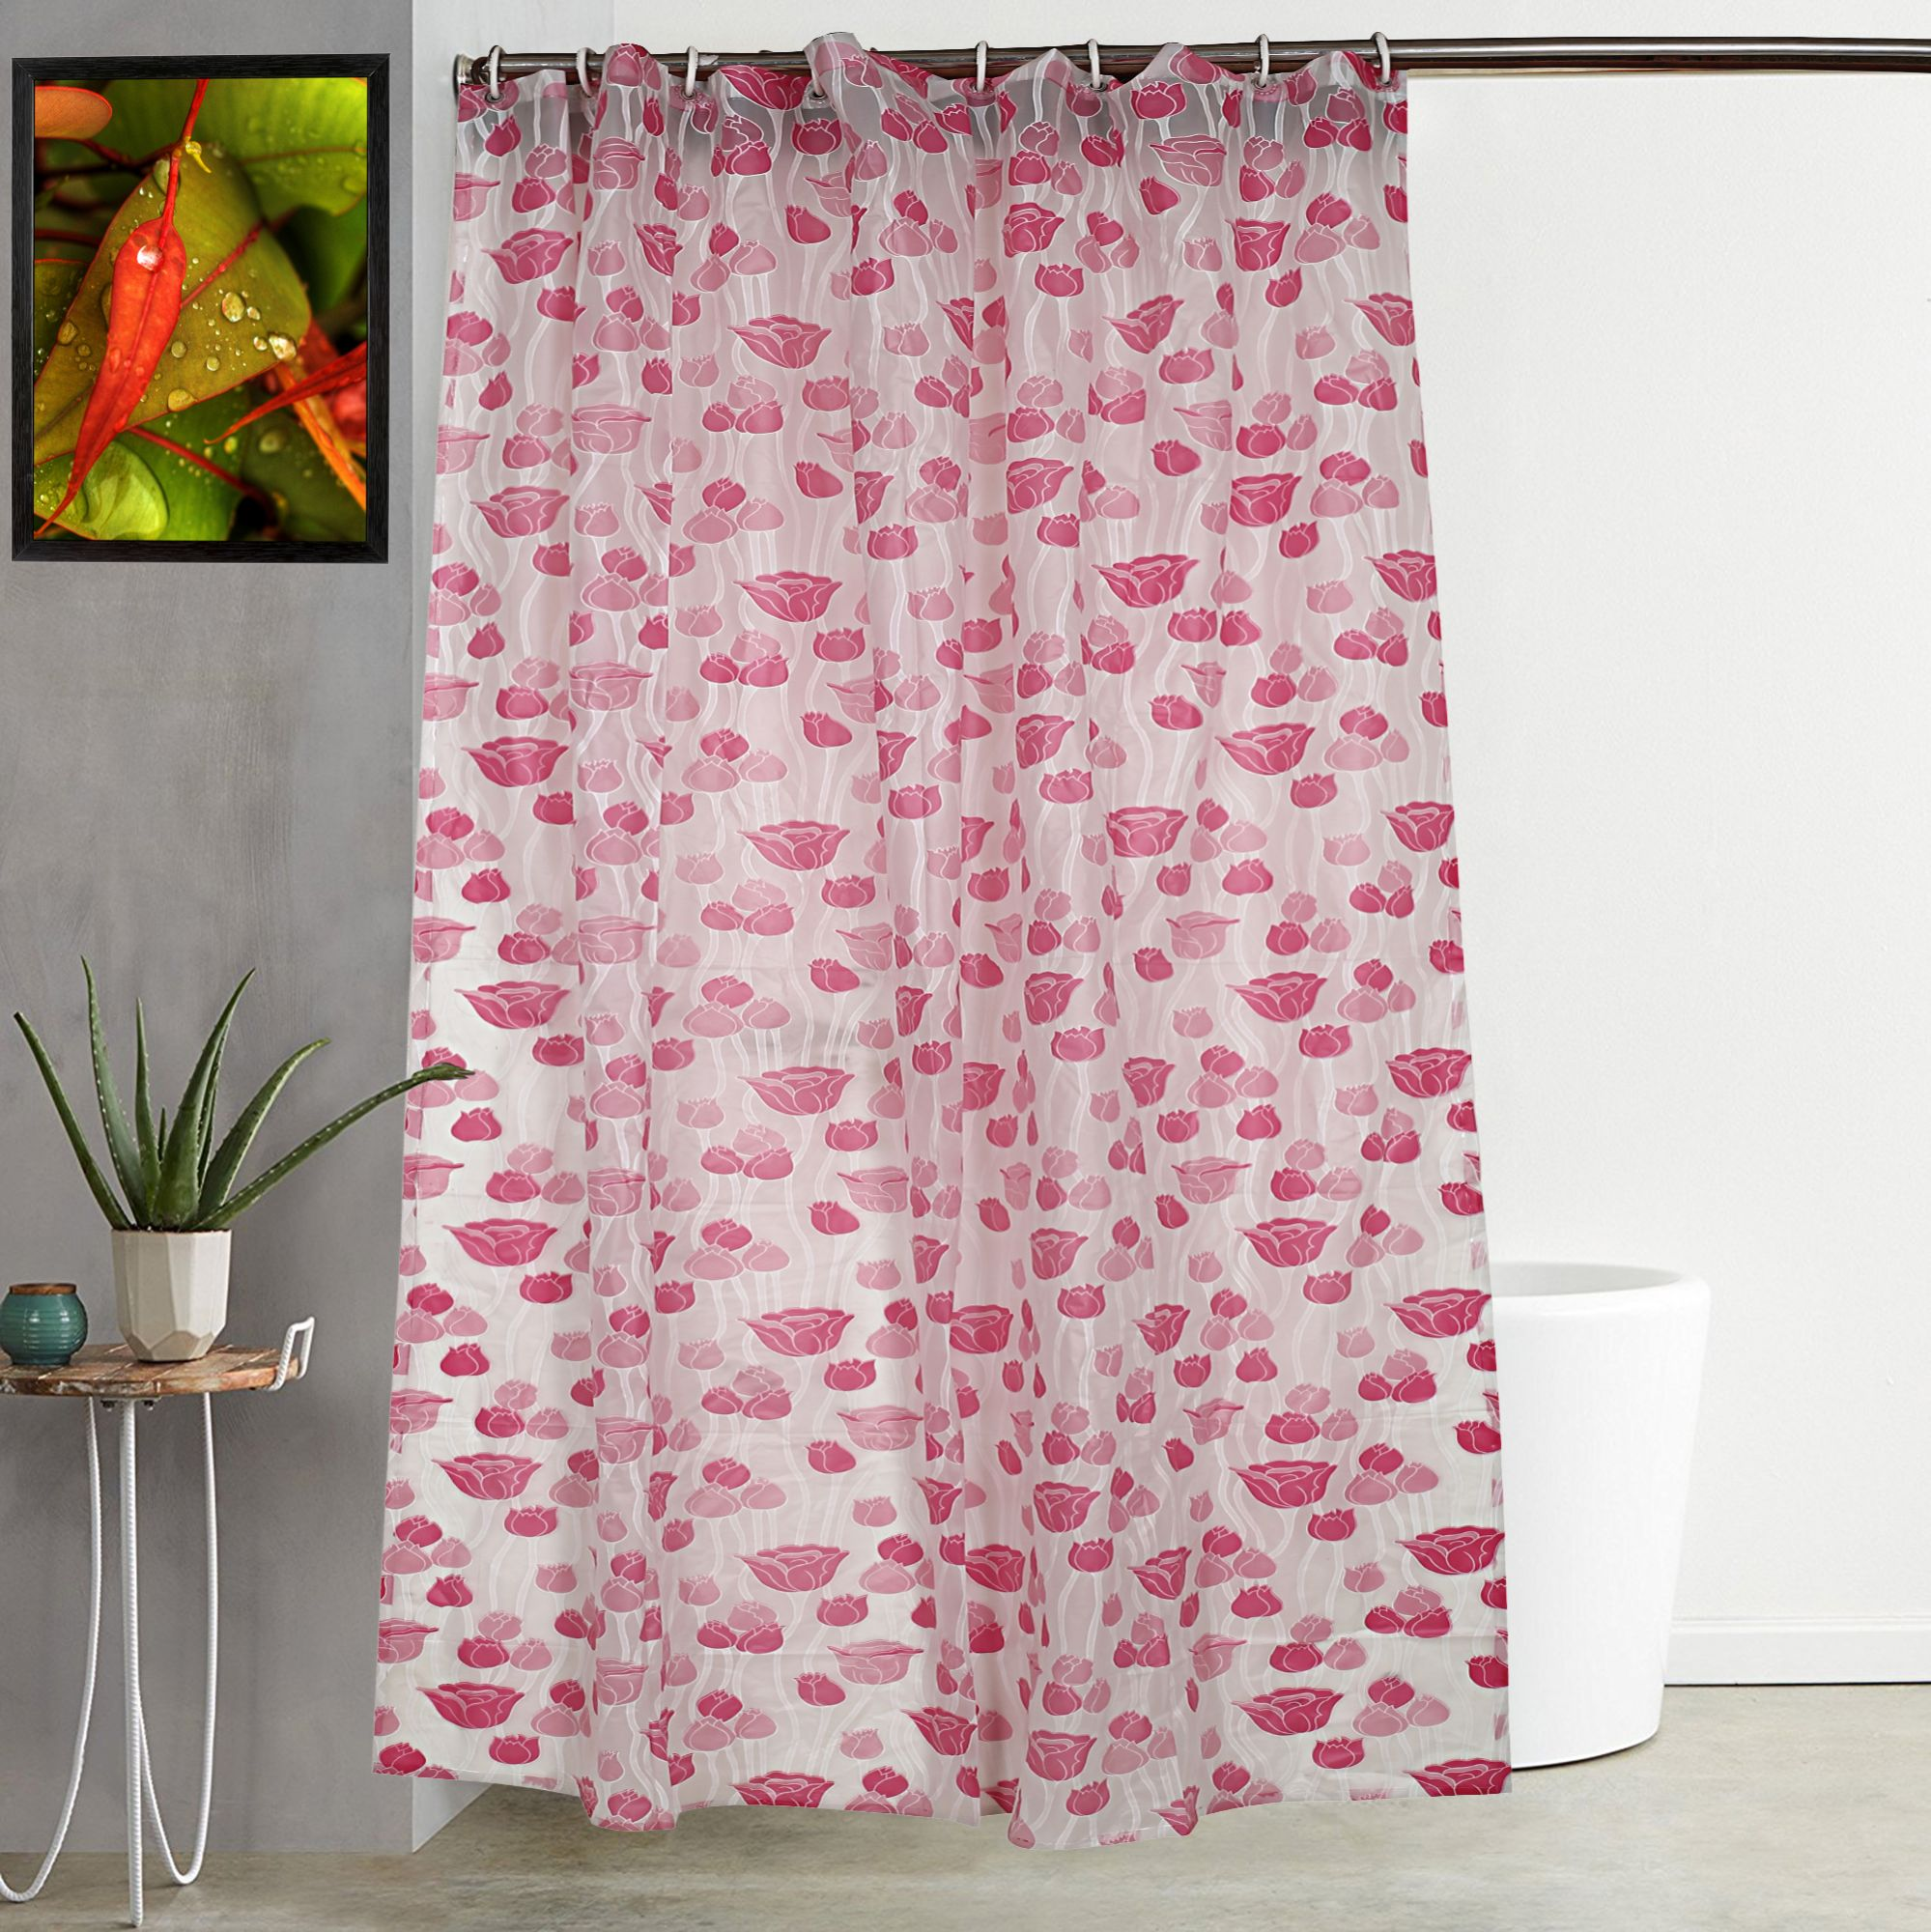 Kuber Industries PVC 7 Feet Shower Curtain with 8 Hooks (Pink)-CTKTC3923